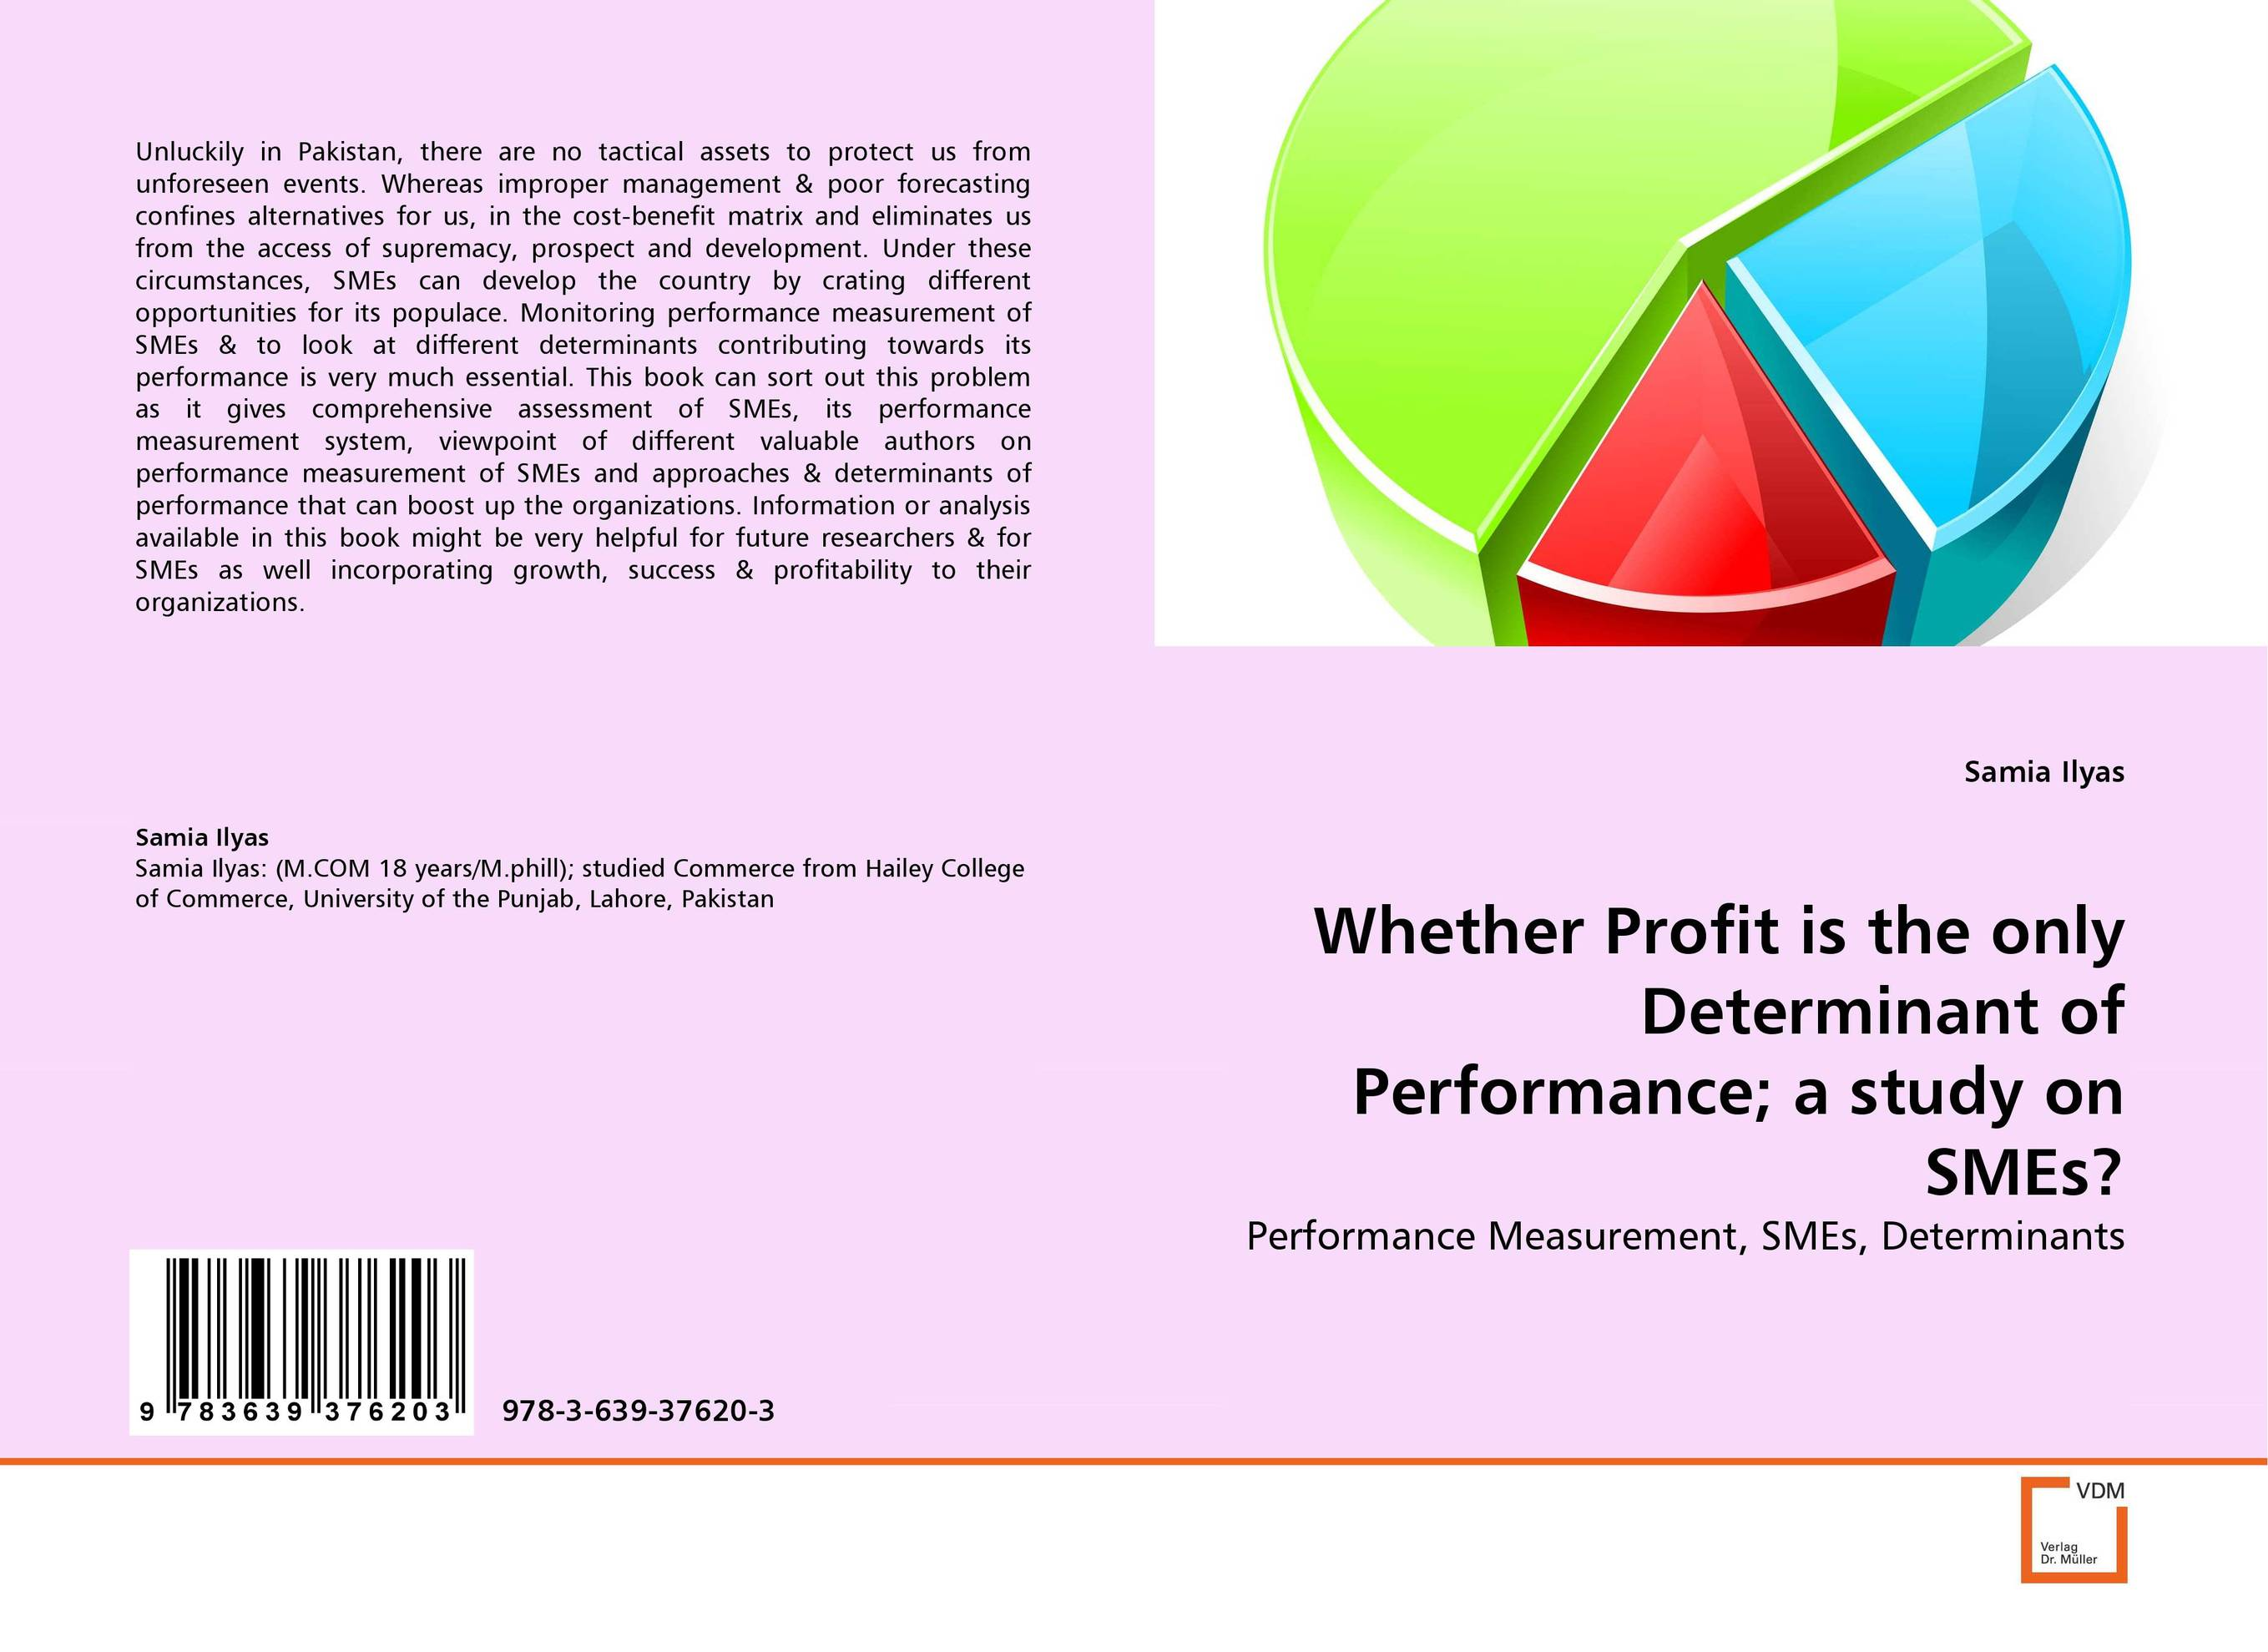 Whether Profit is the only Determinant of Performance; a study on SMEs? predictive validity of kcpe performance on kcse performance